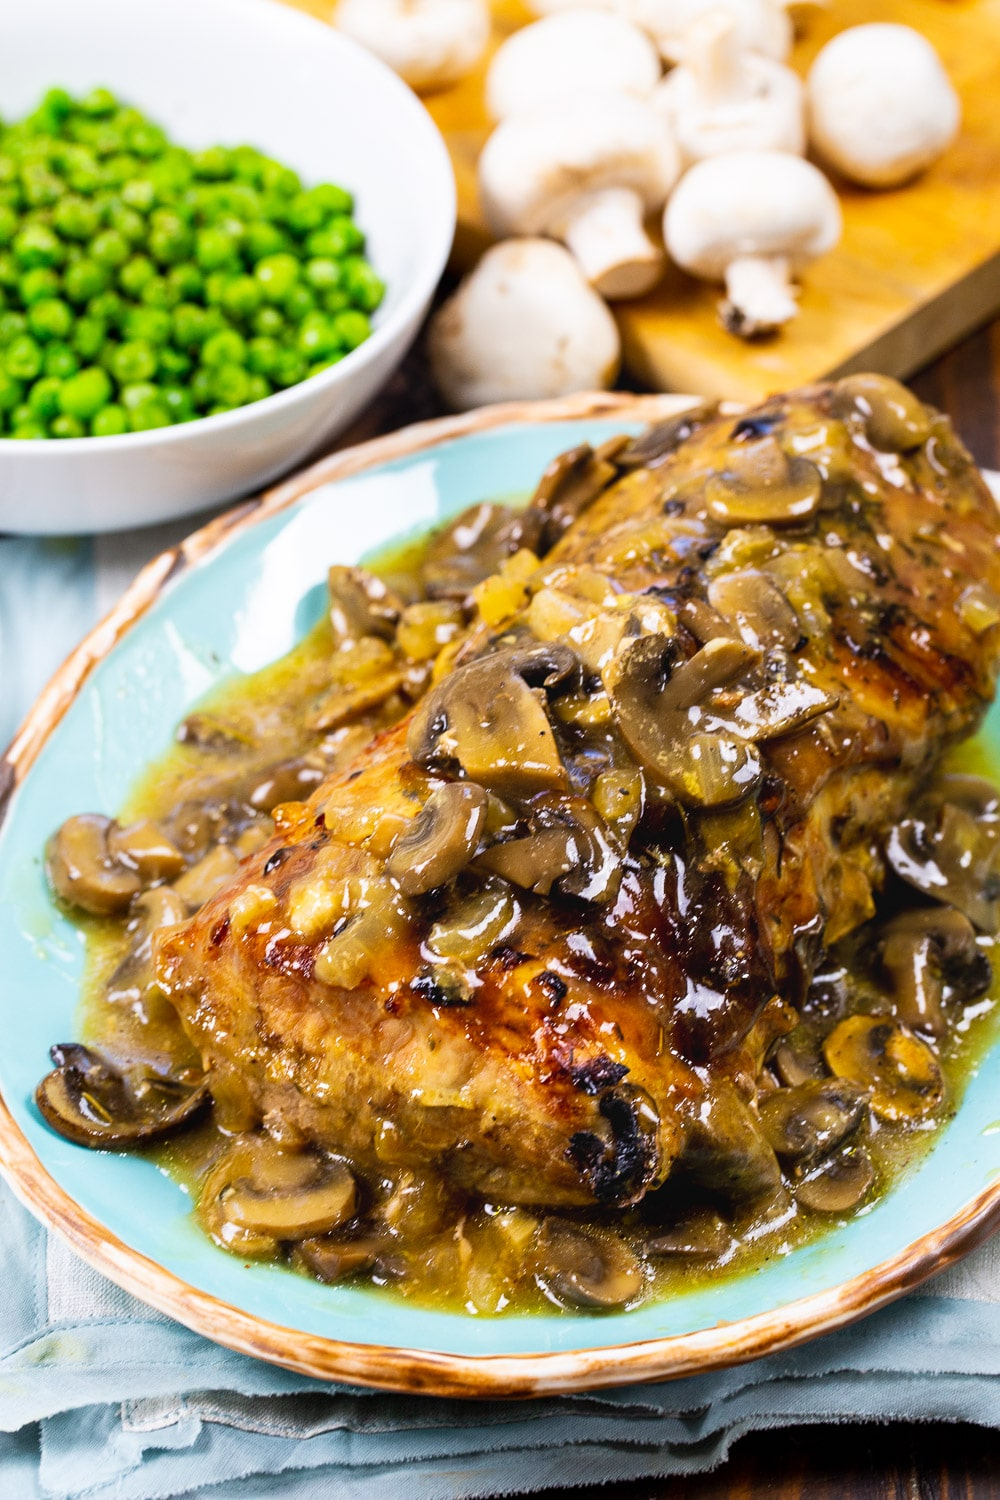 Roasted Pork Loin with Mushroom Gravy on serving platter with bowl of peas.